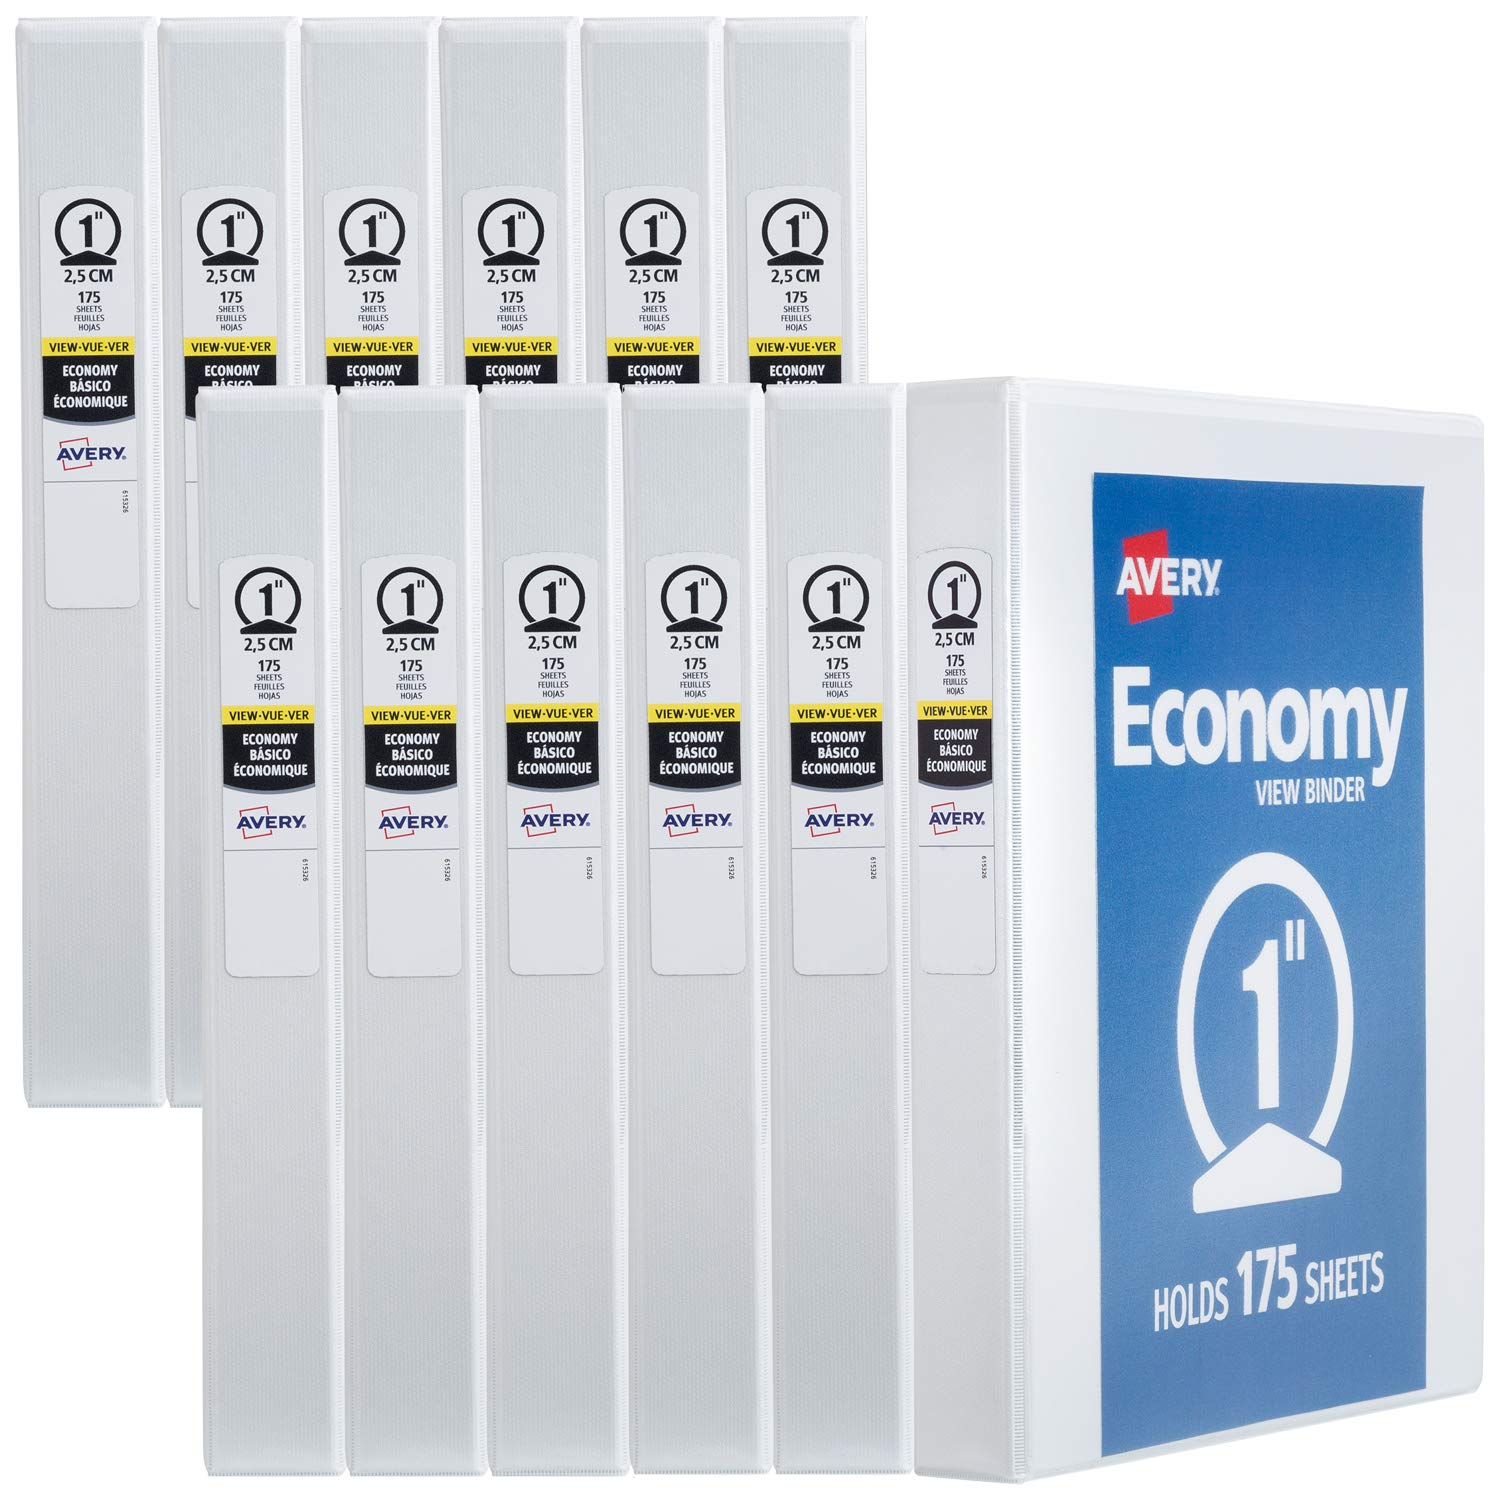 Avery 1'' Economy View 3 Ring Binder, Round Ring, Holds 8.5'' x 11'' Paper, 12 White Binders (5711) by Avery (Image #1)